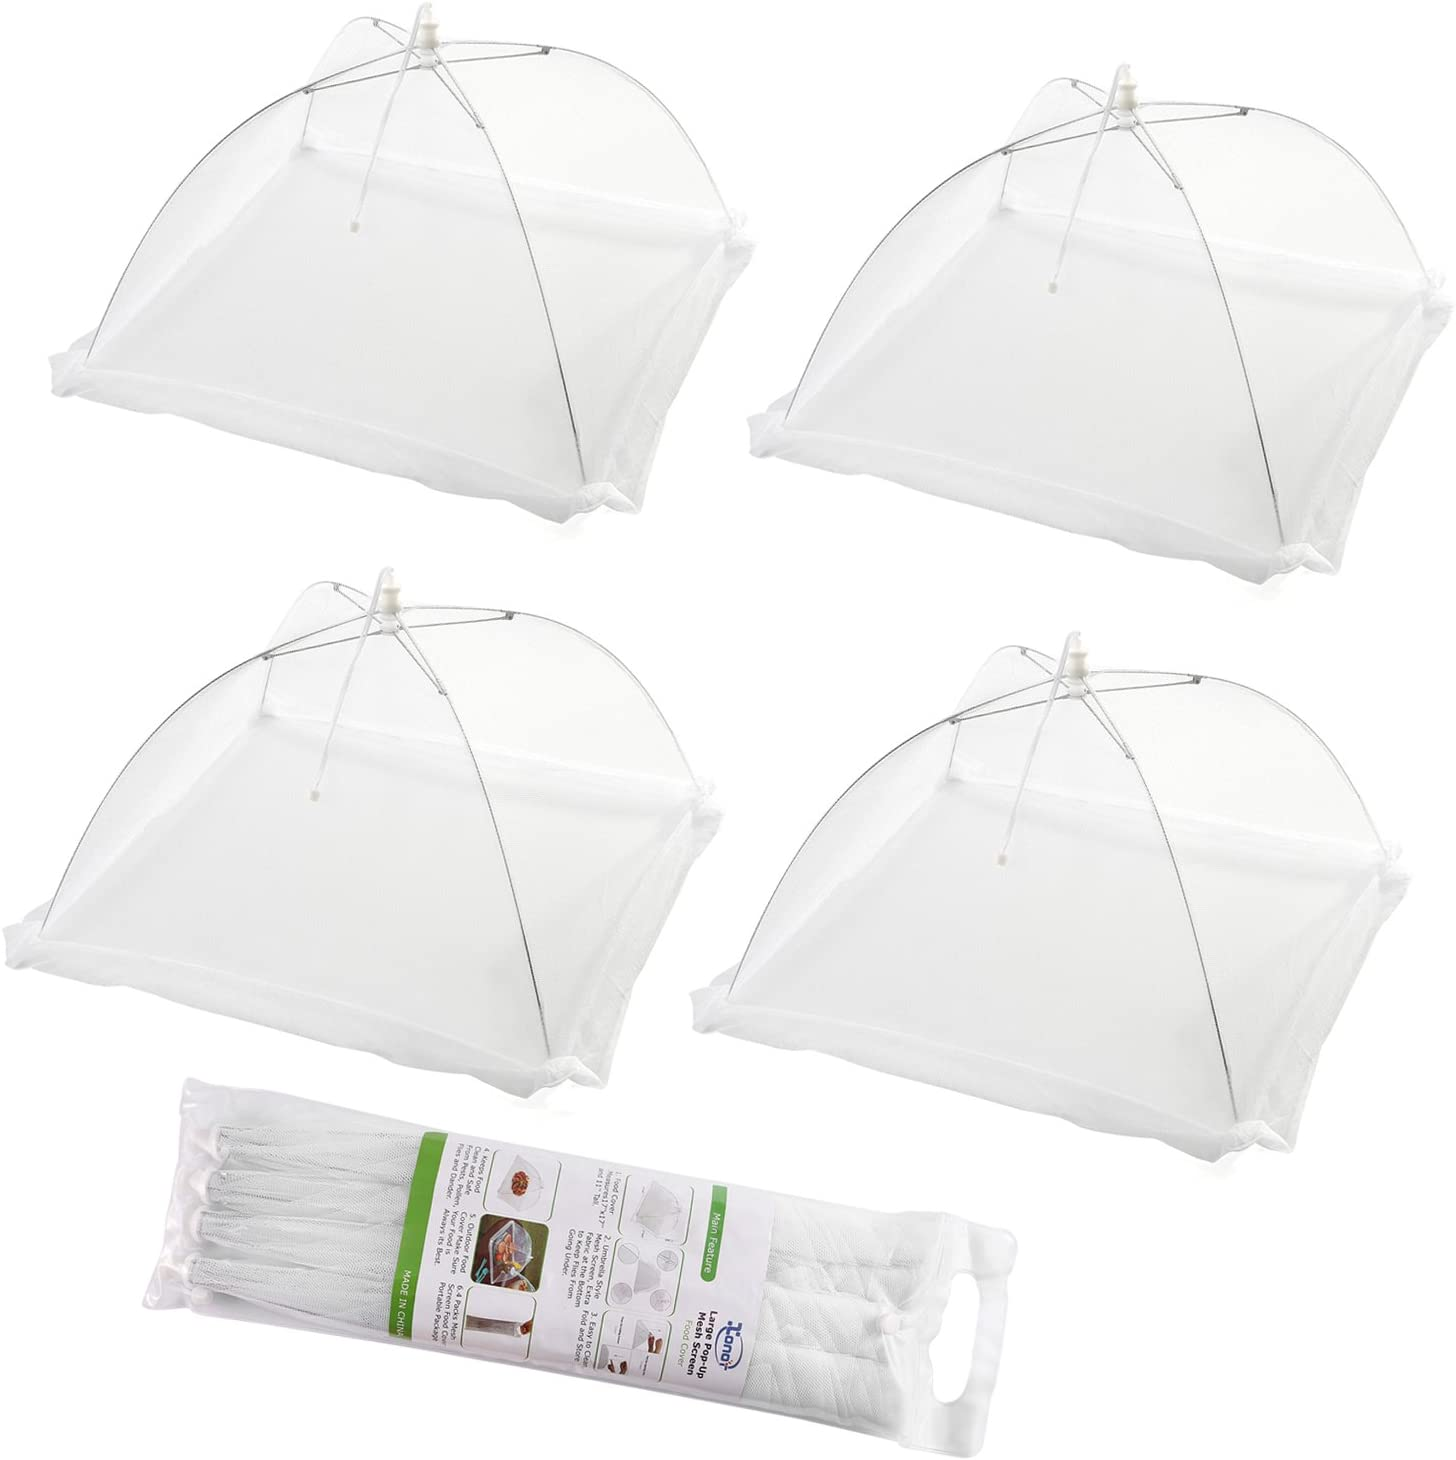 (Set of 4) Large Pop-Up Mesh Screen Food Cover Tents - Keep Out Flies, Bugs, Mosquitos - Reusable